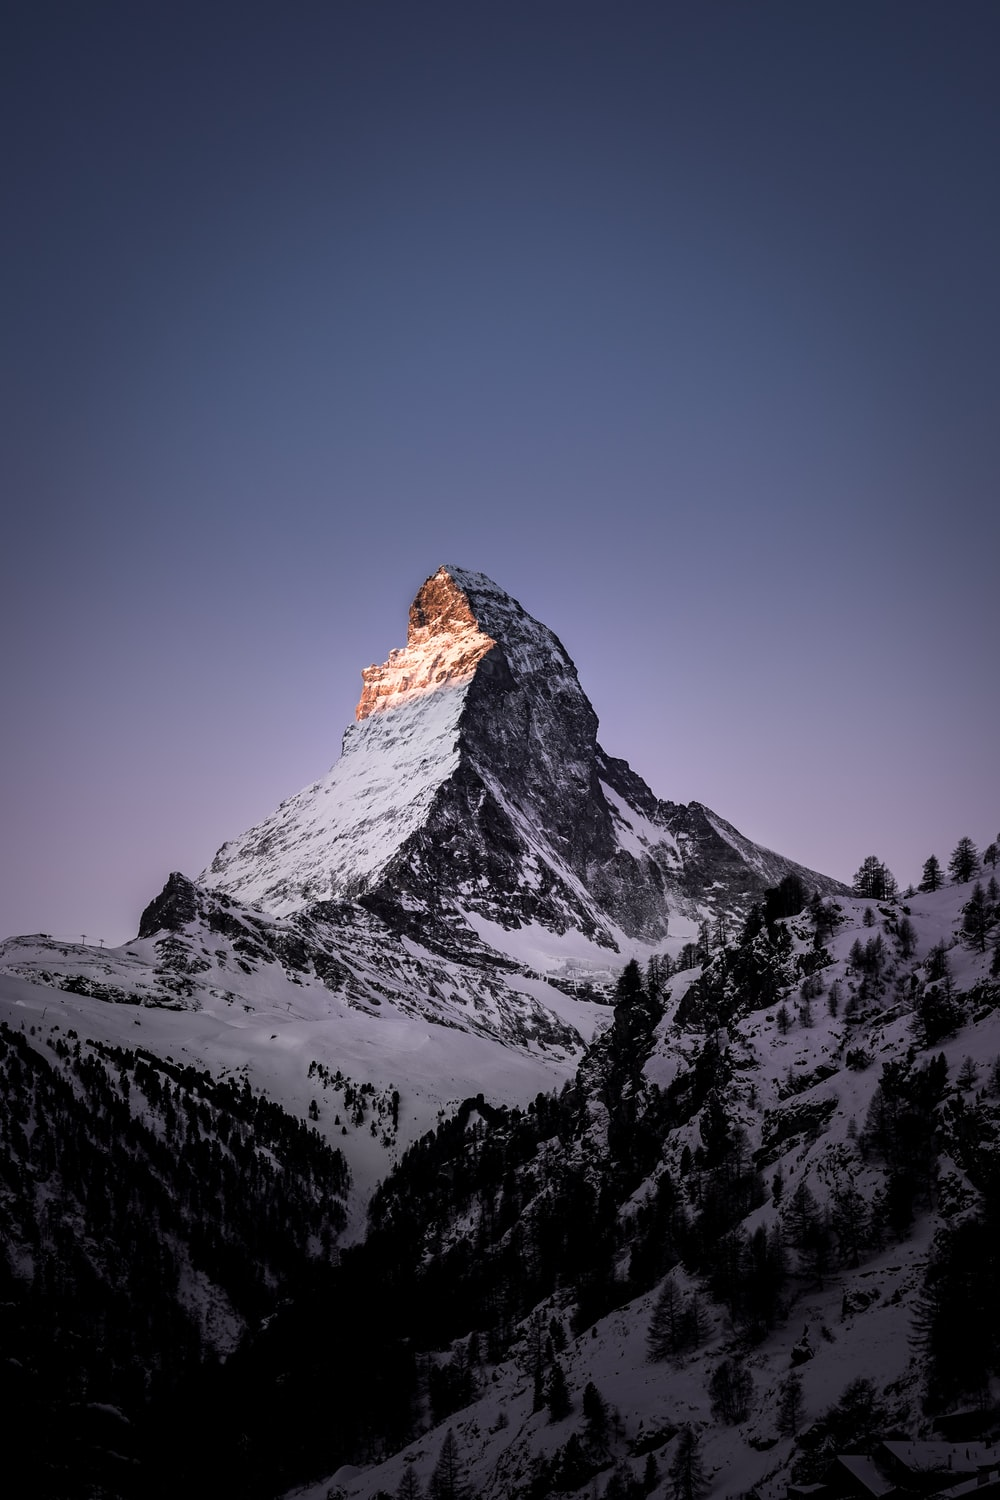 mountain coated with snow